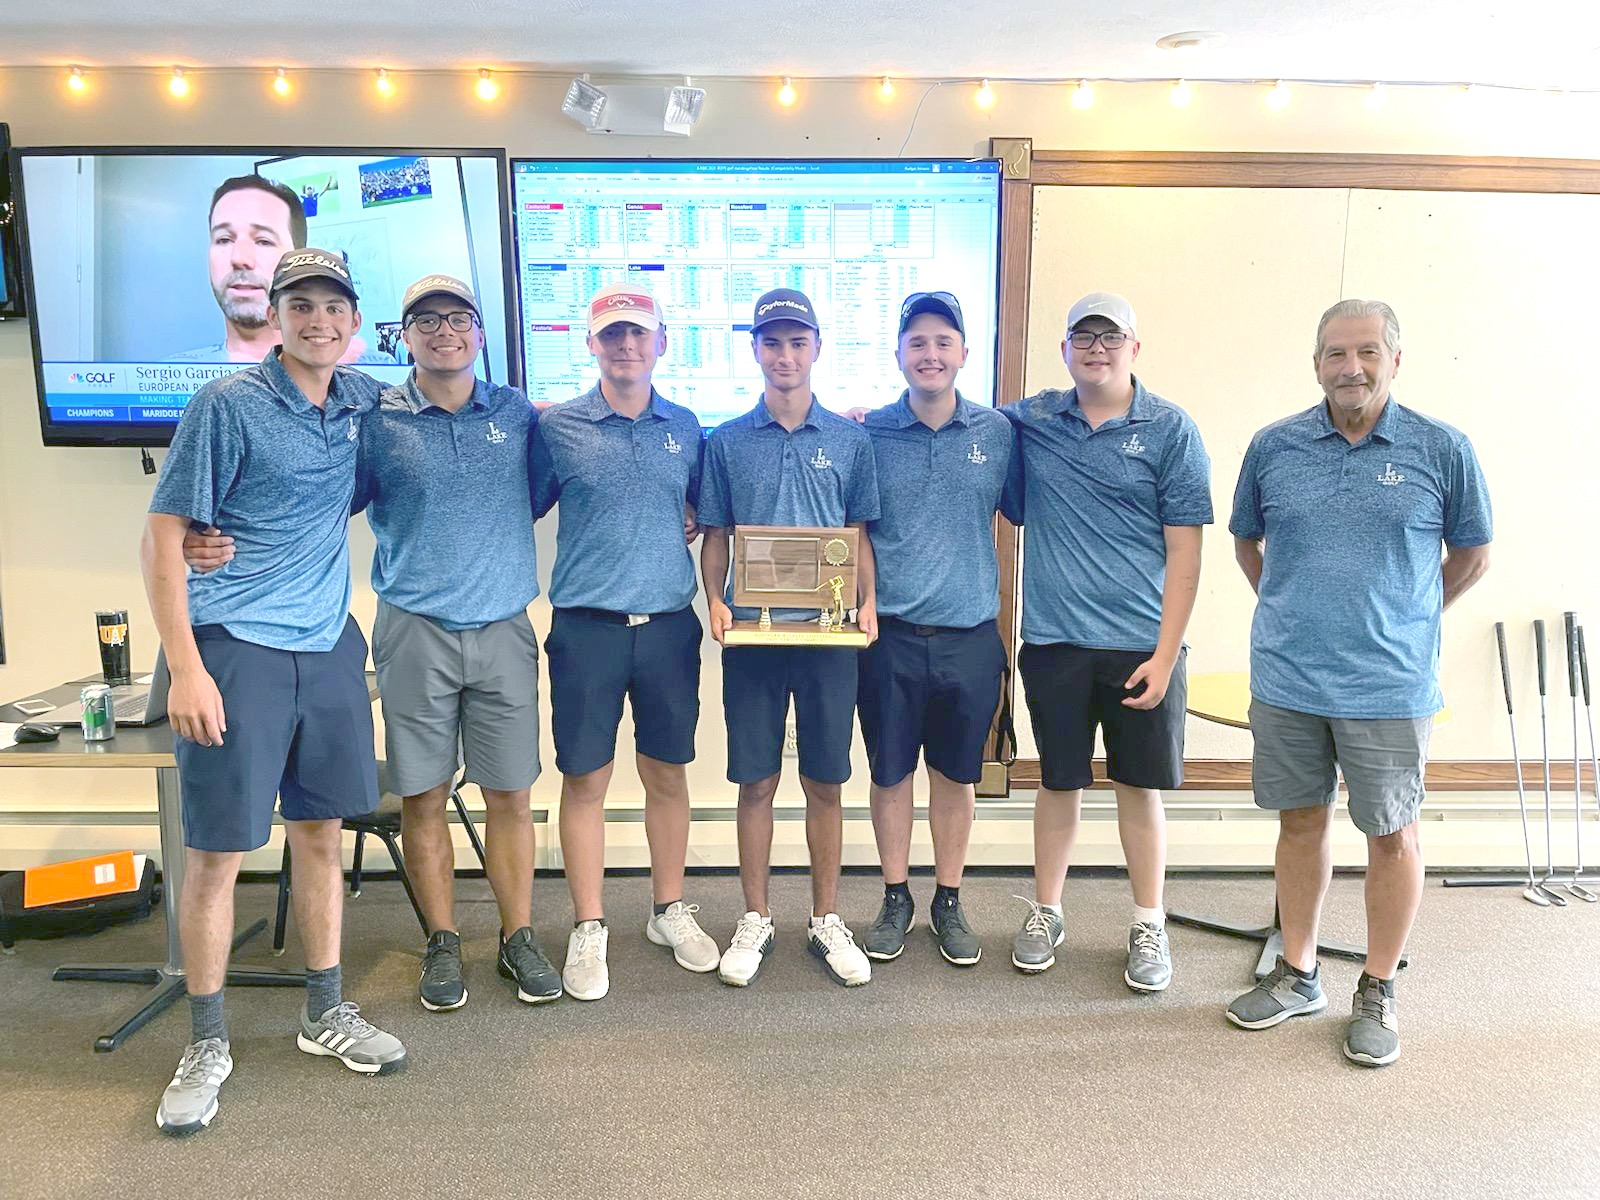 Lake golfers (left to right) Myles Lowe, Chase Osborn, Ryan Wagner, Ben Luoma, Jack Walsh, Carson Delauter, and coach Mike DeStazio